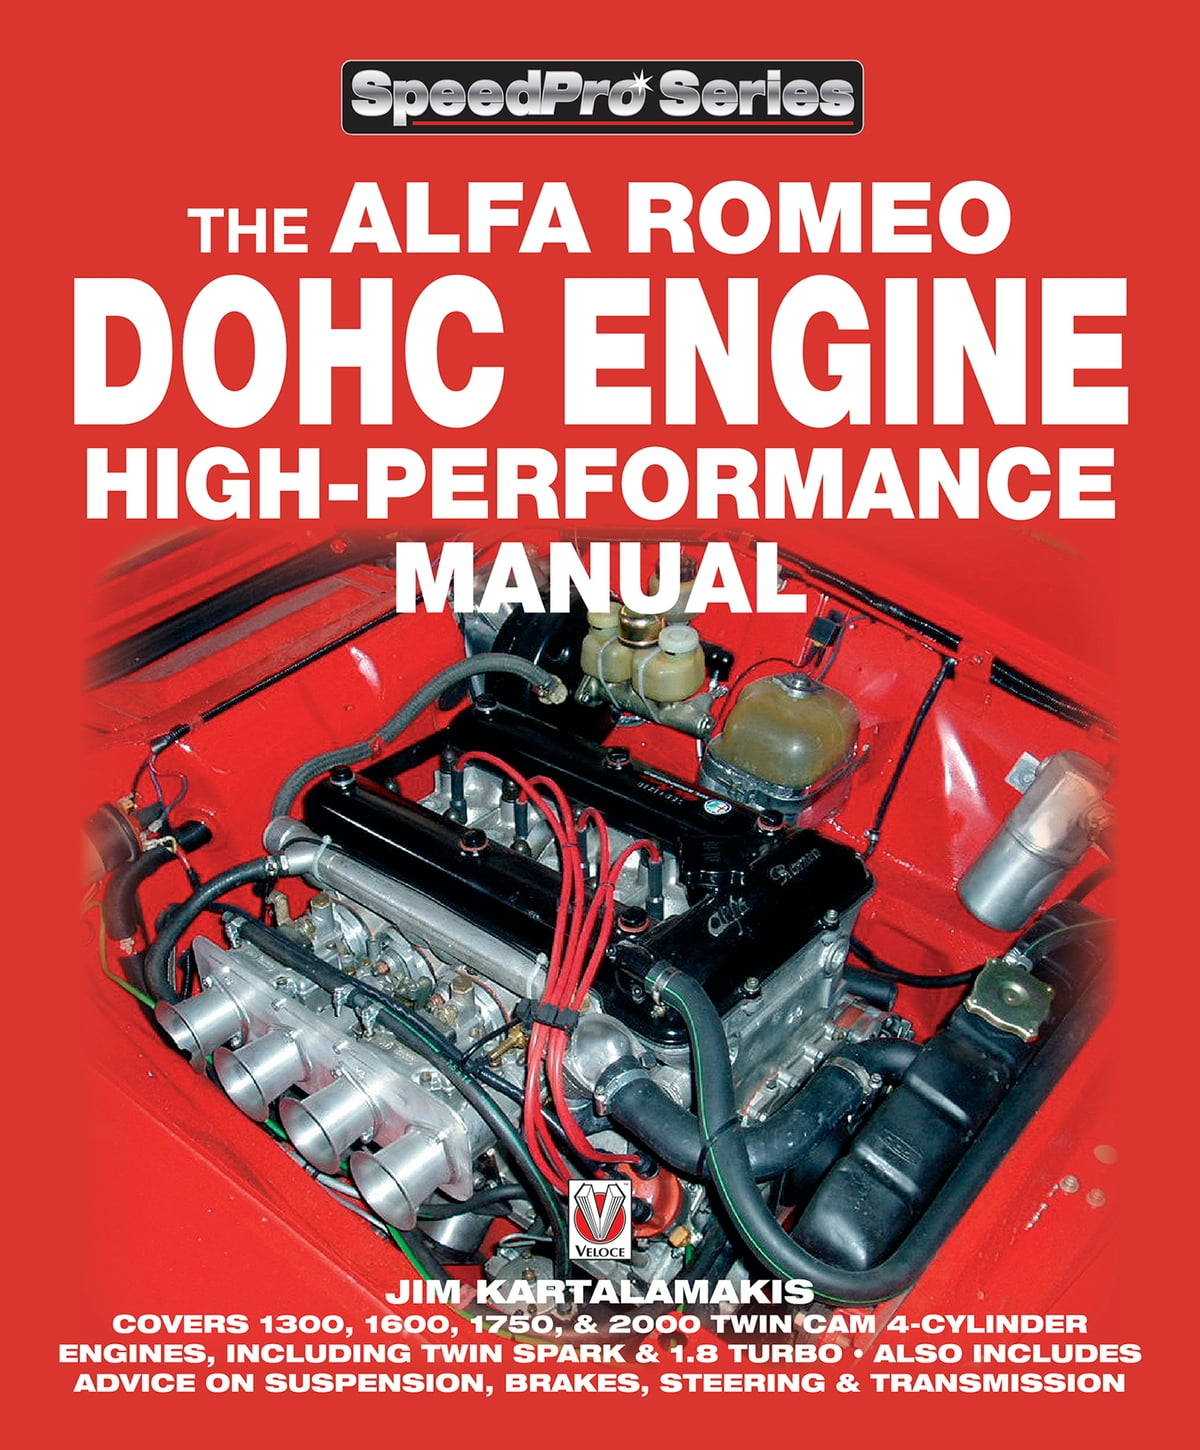 Alfa Romeo DOHC High-performance Manual eBook by Jim Kartalamakis -  9781845845476 | Rakuten Kobo